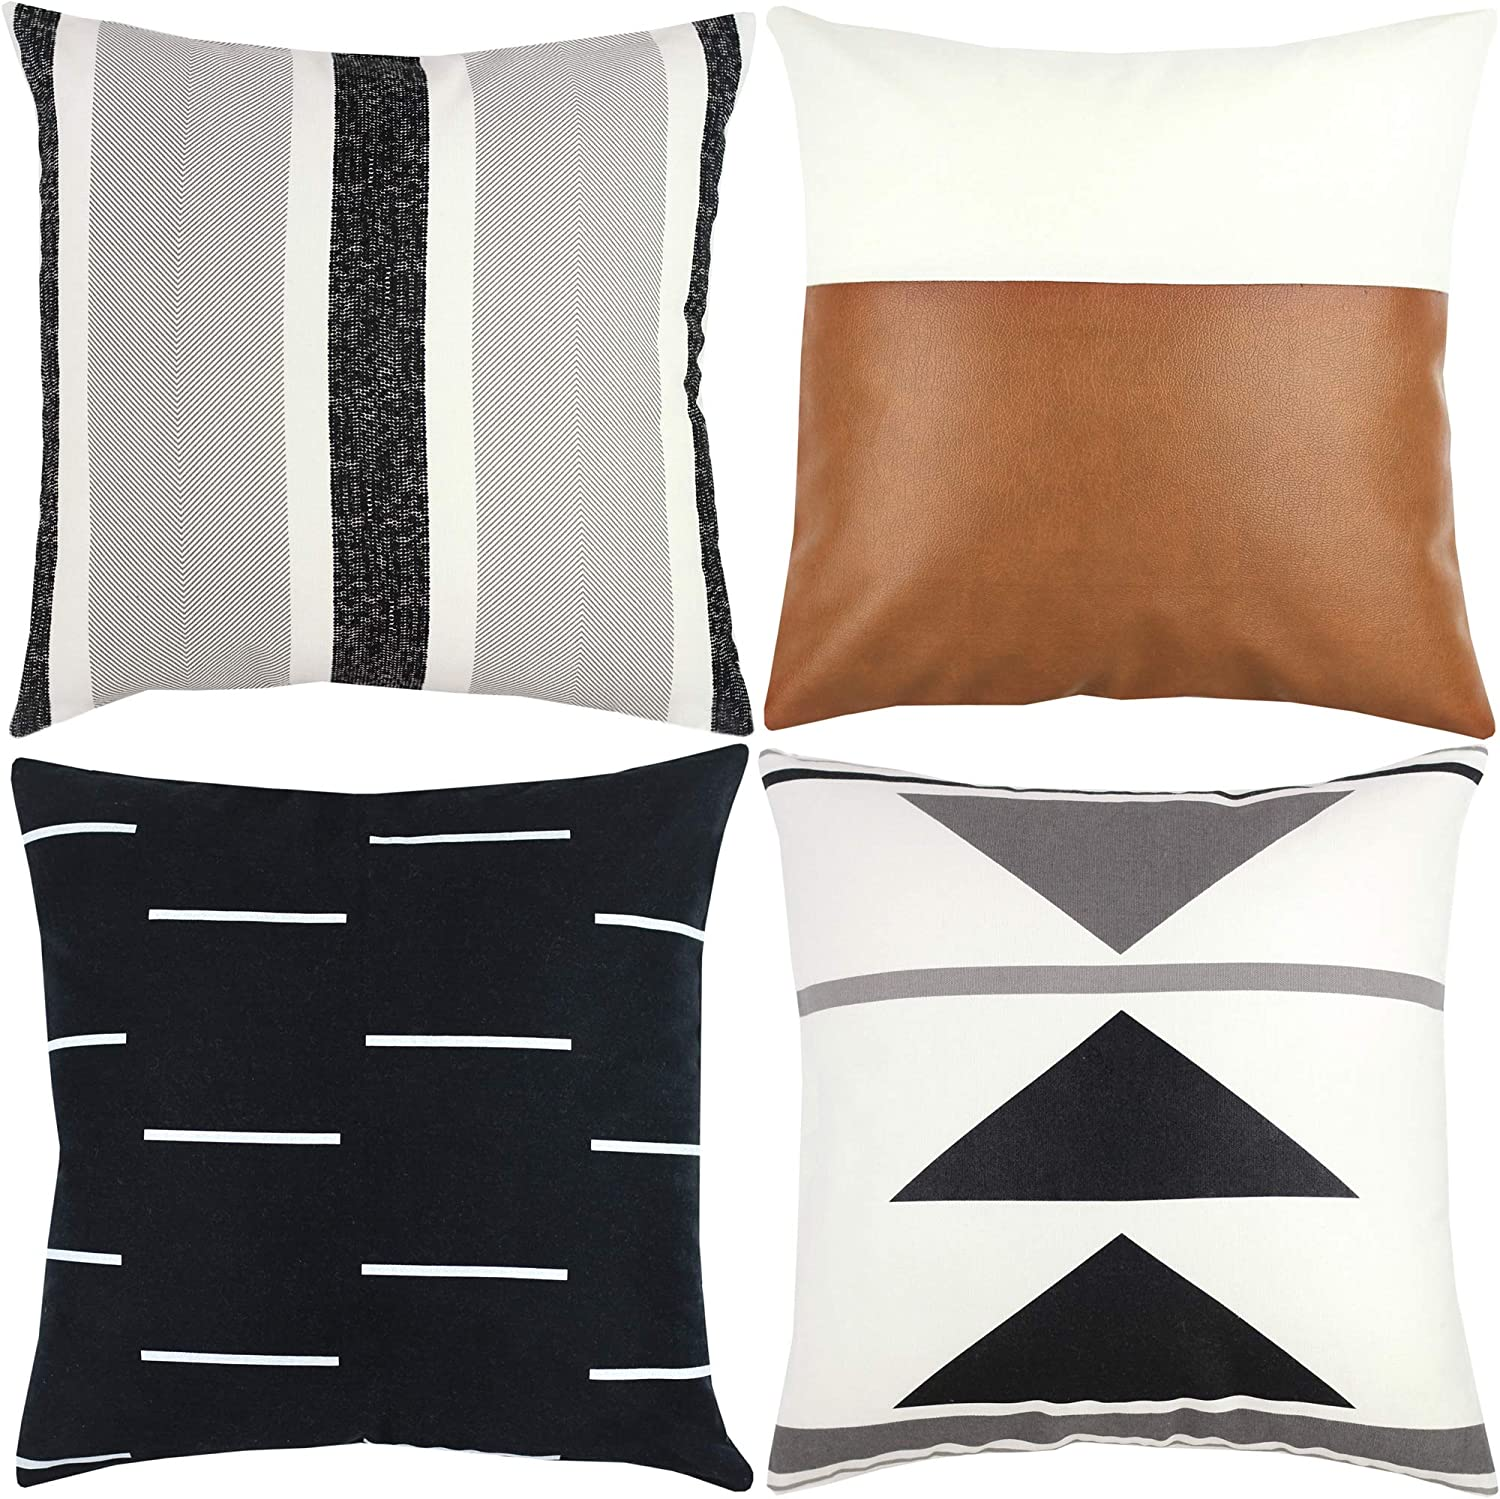 Woven Nook Decorative Throw Pillow Covers ONLY for Couch, Sofa, or Bed Set of 4 18x18 20x20 and 22x22 inch Modern Design 100% Cotton Black White Geometric Faux Leather Zulu Set (22'' x 22'')